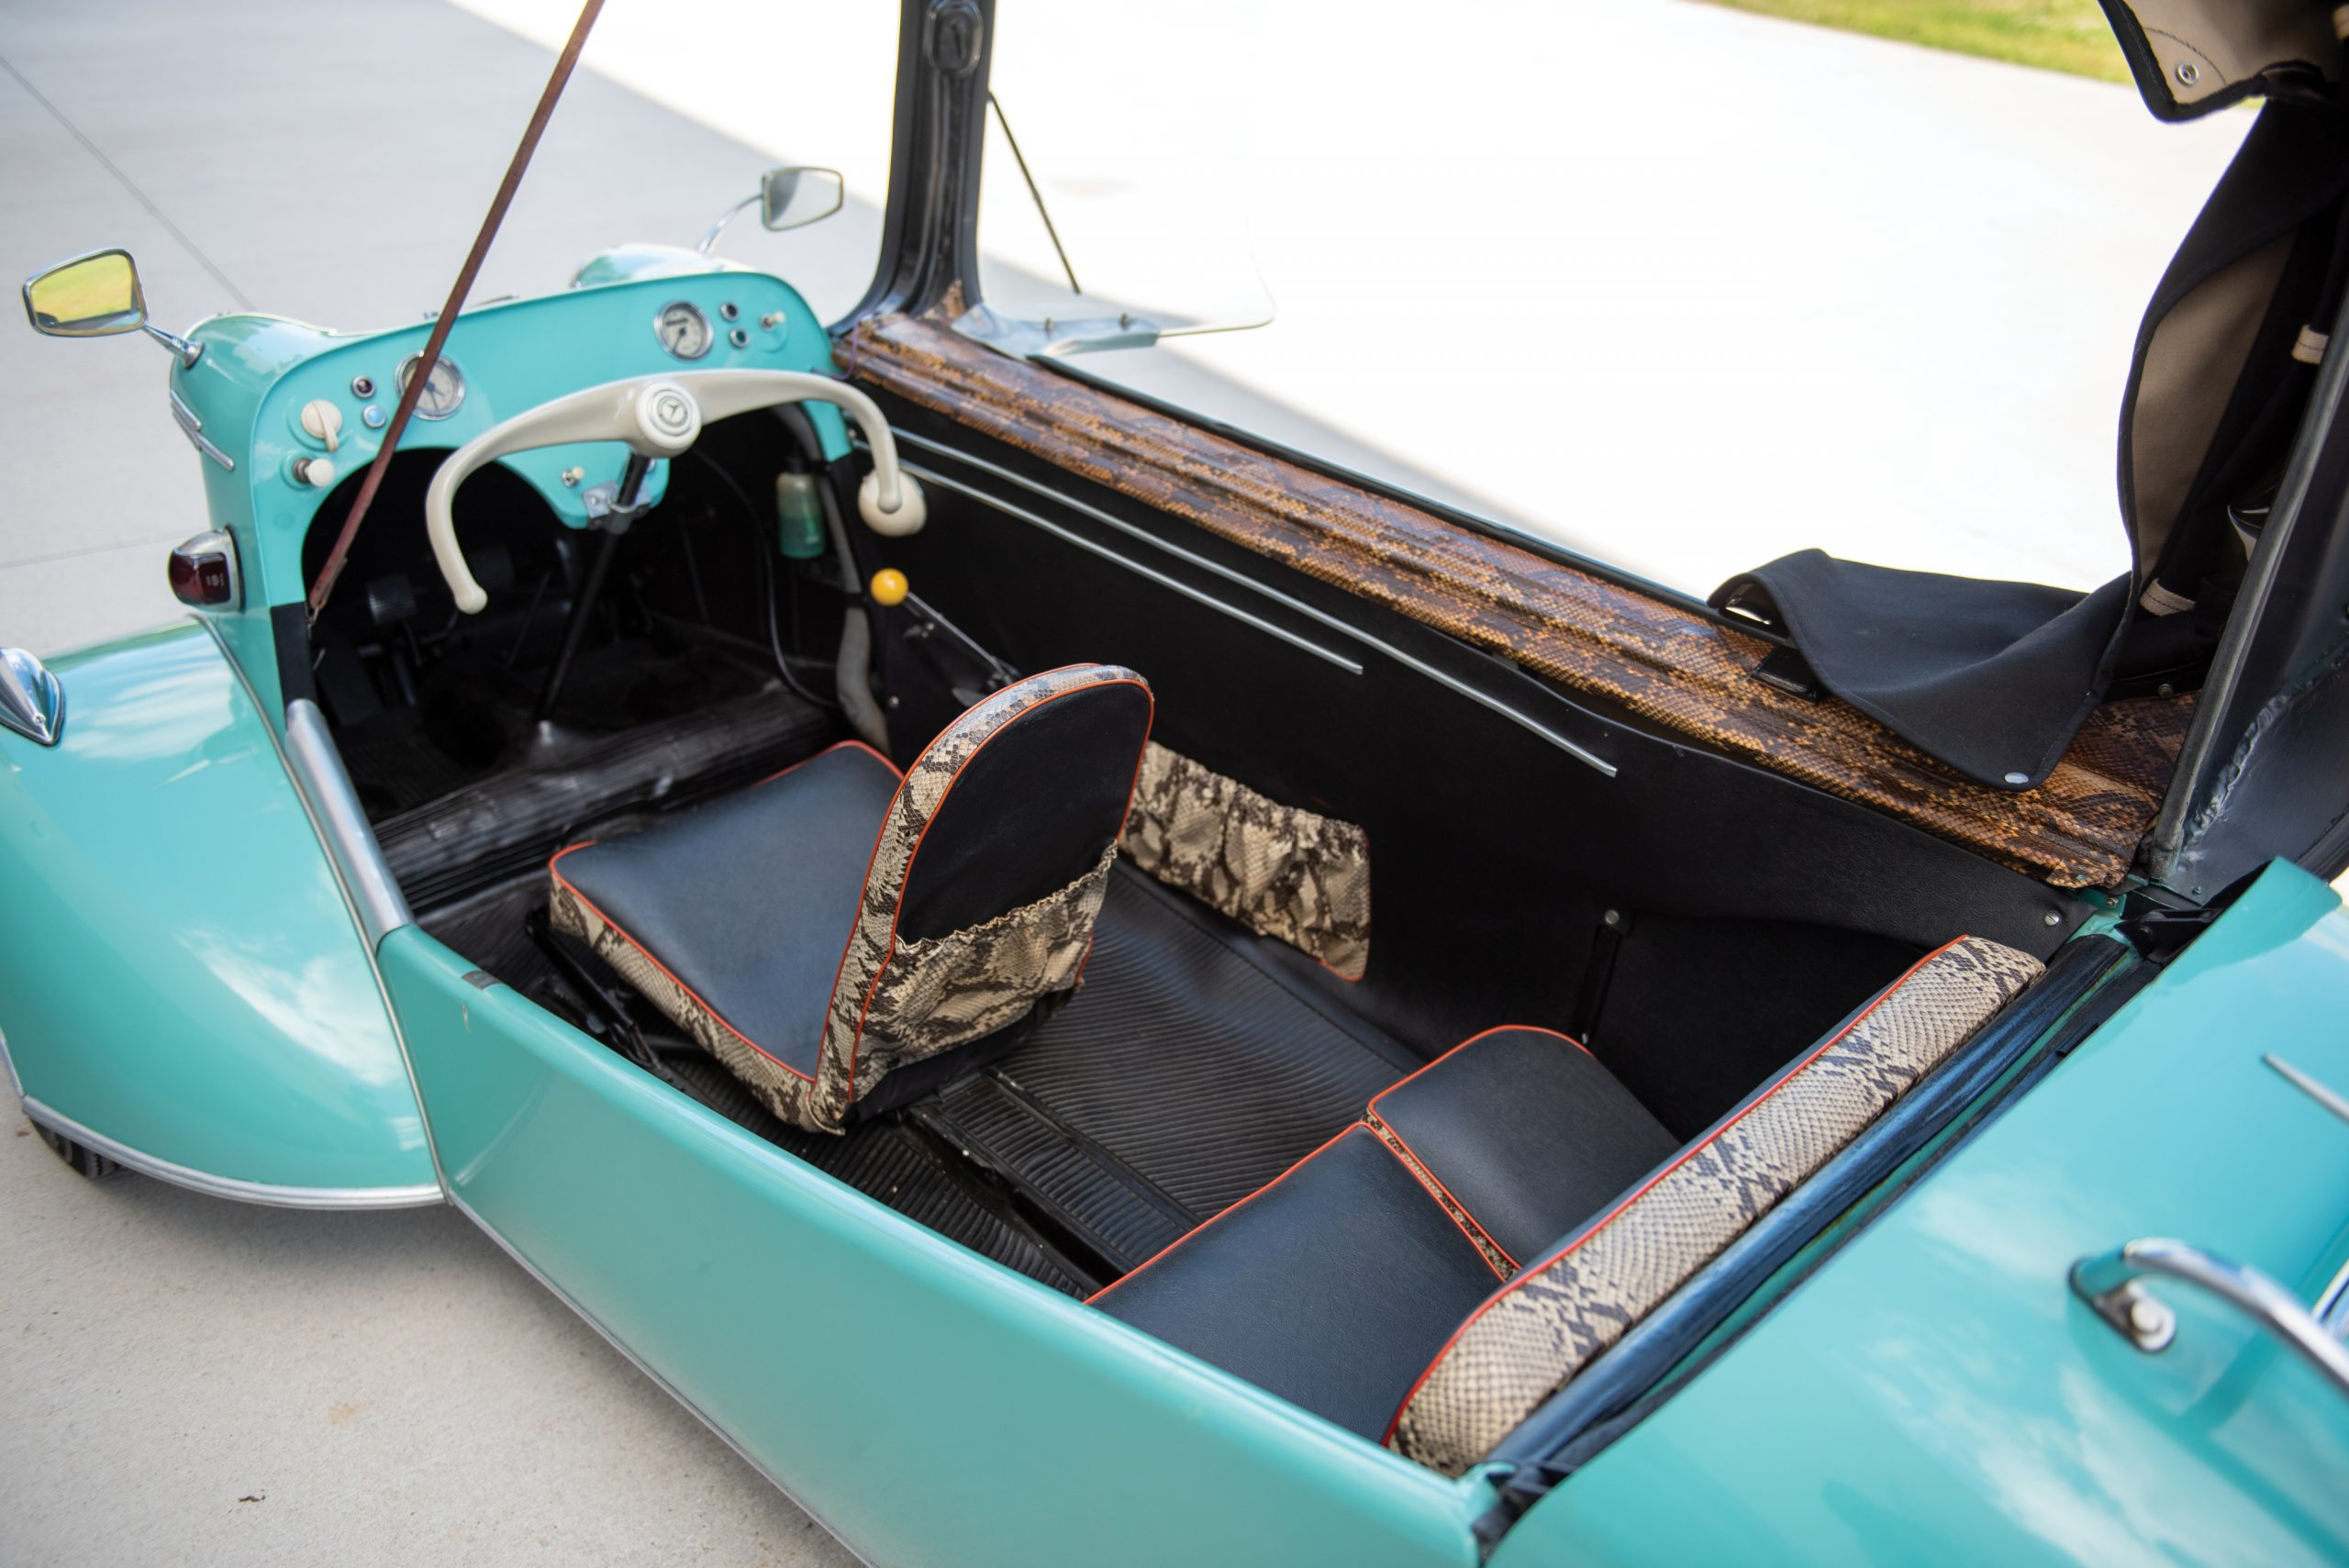 1958 Messerschmitt KR 201 Roadster cockpit